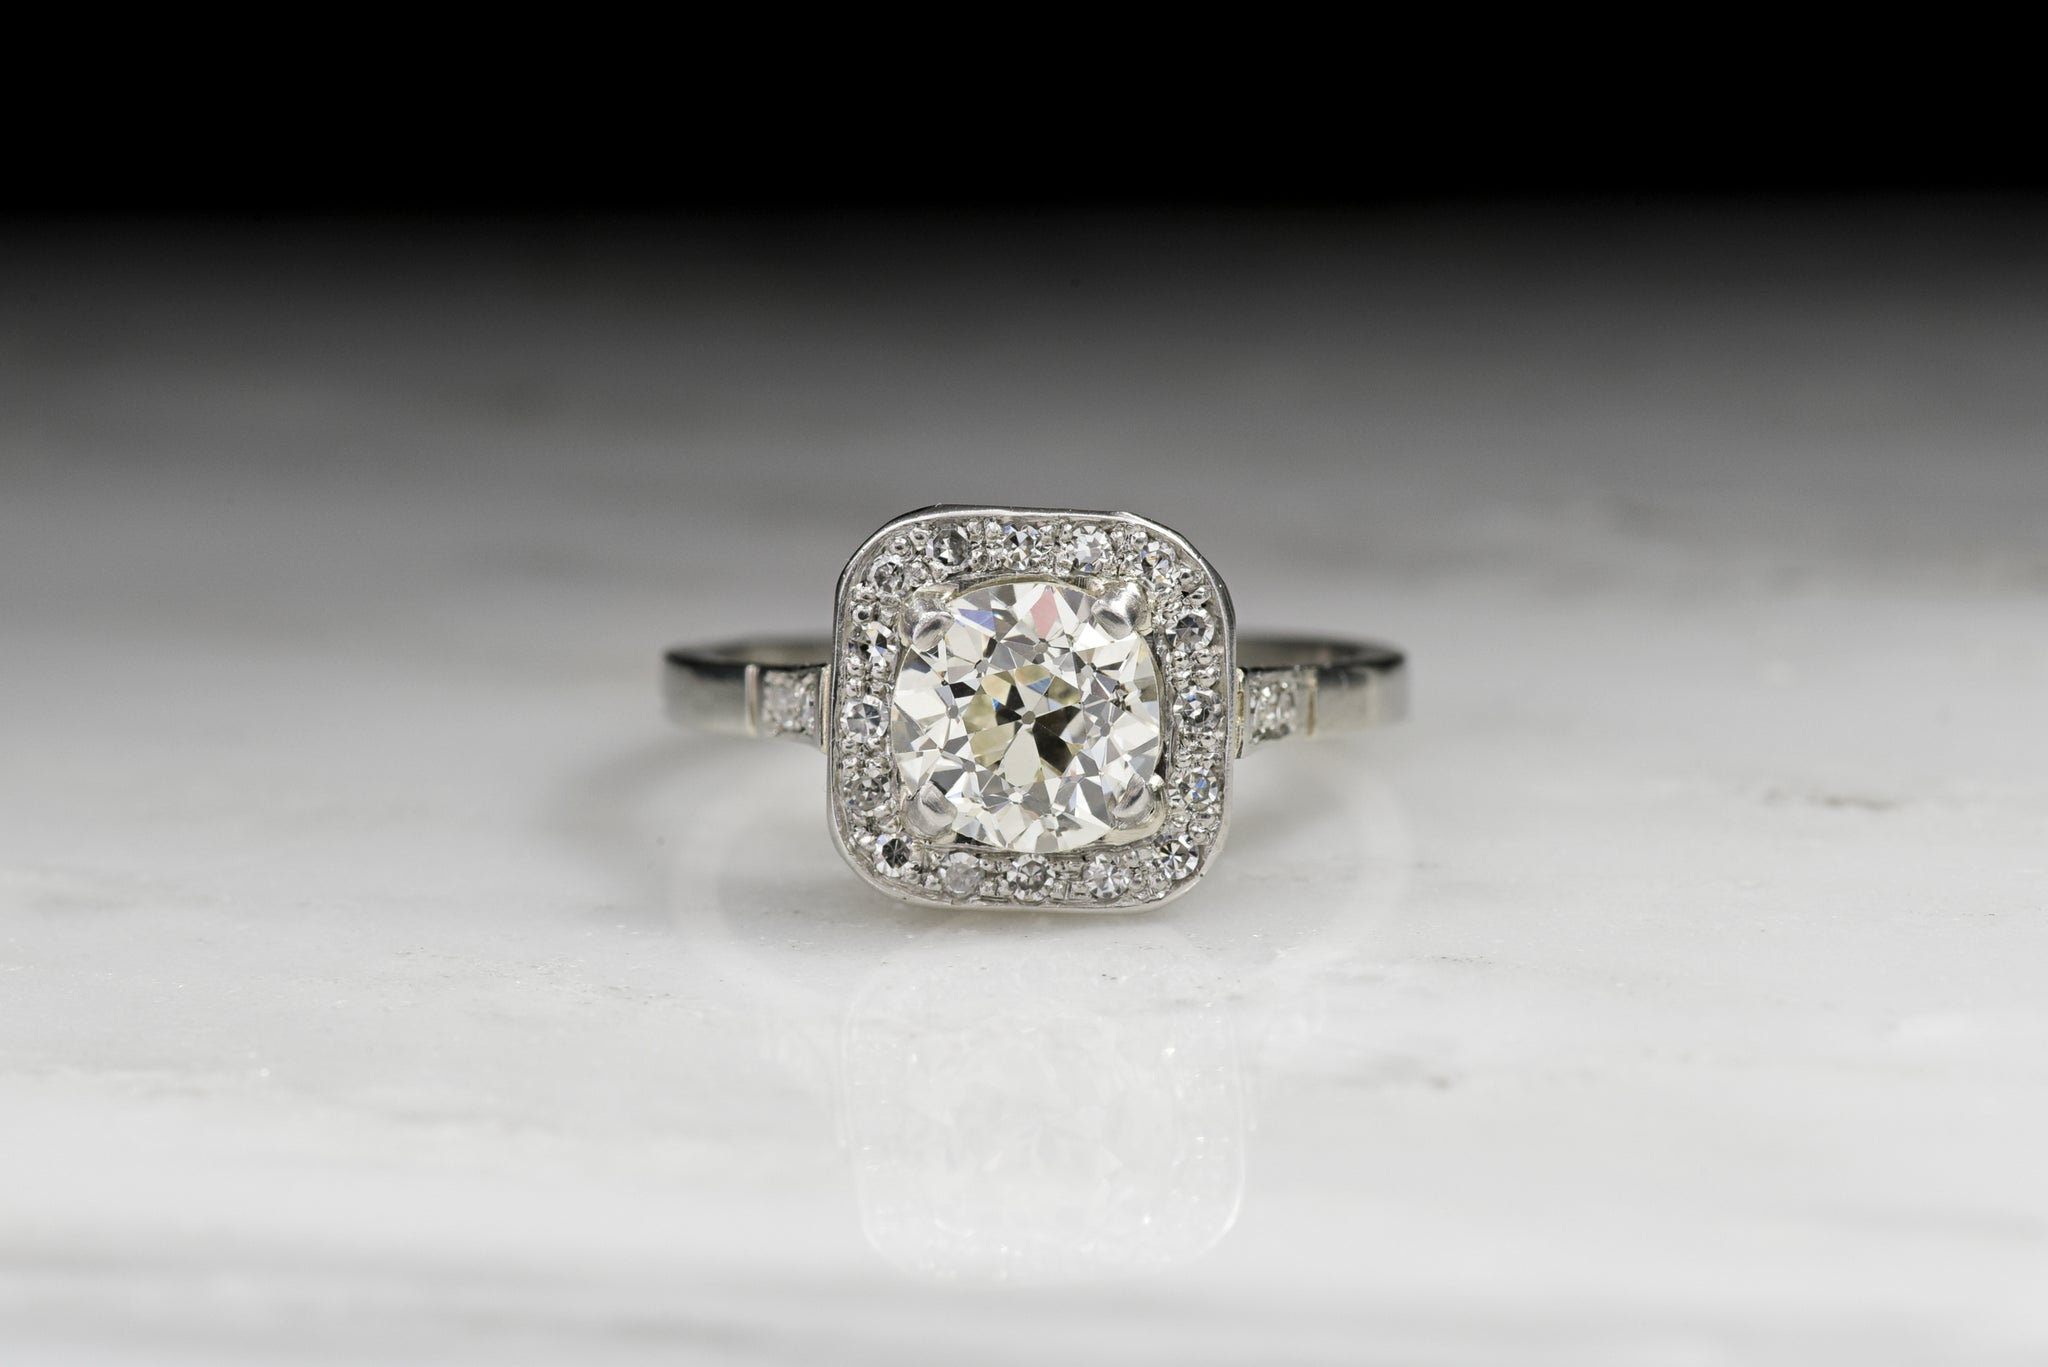 engagement brilliant errd rings diamond daimond cut wd etruscan dawes ring design products